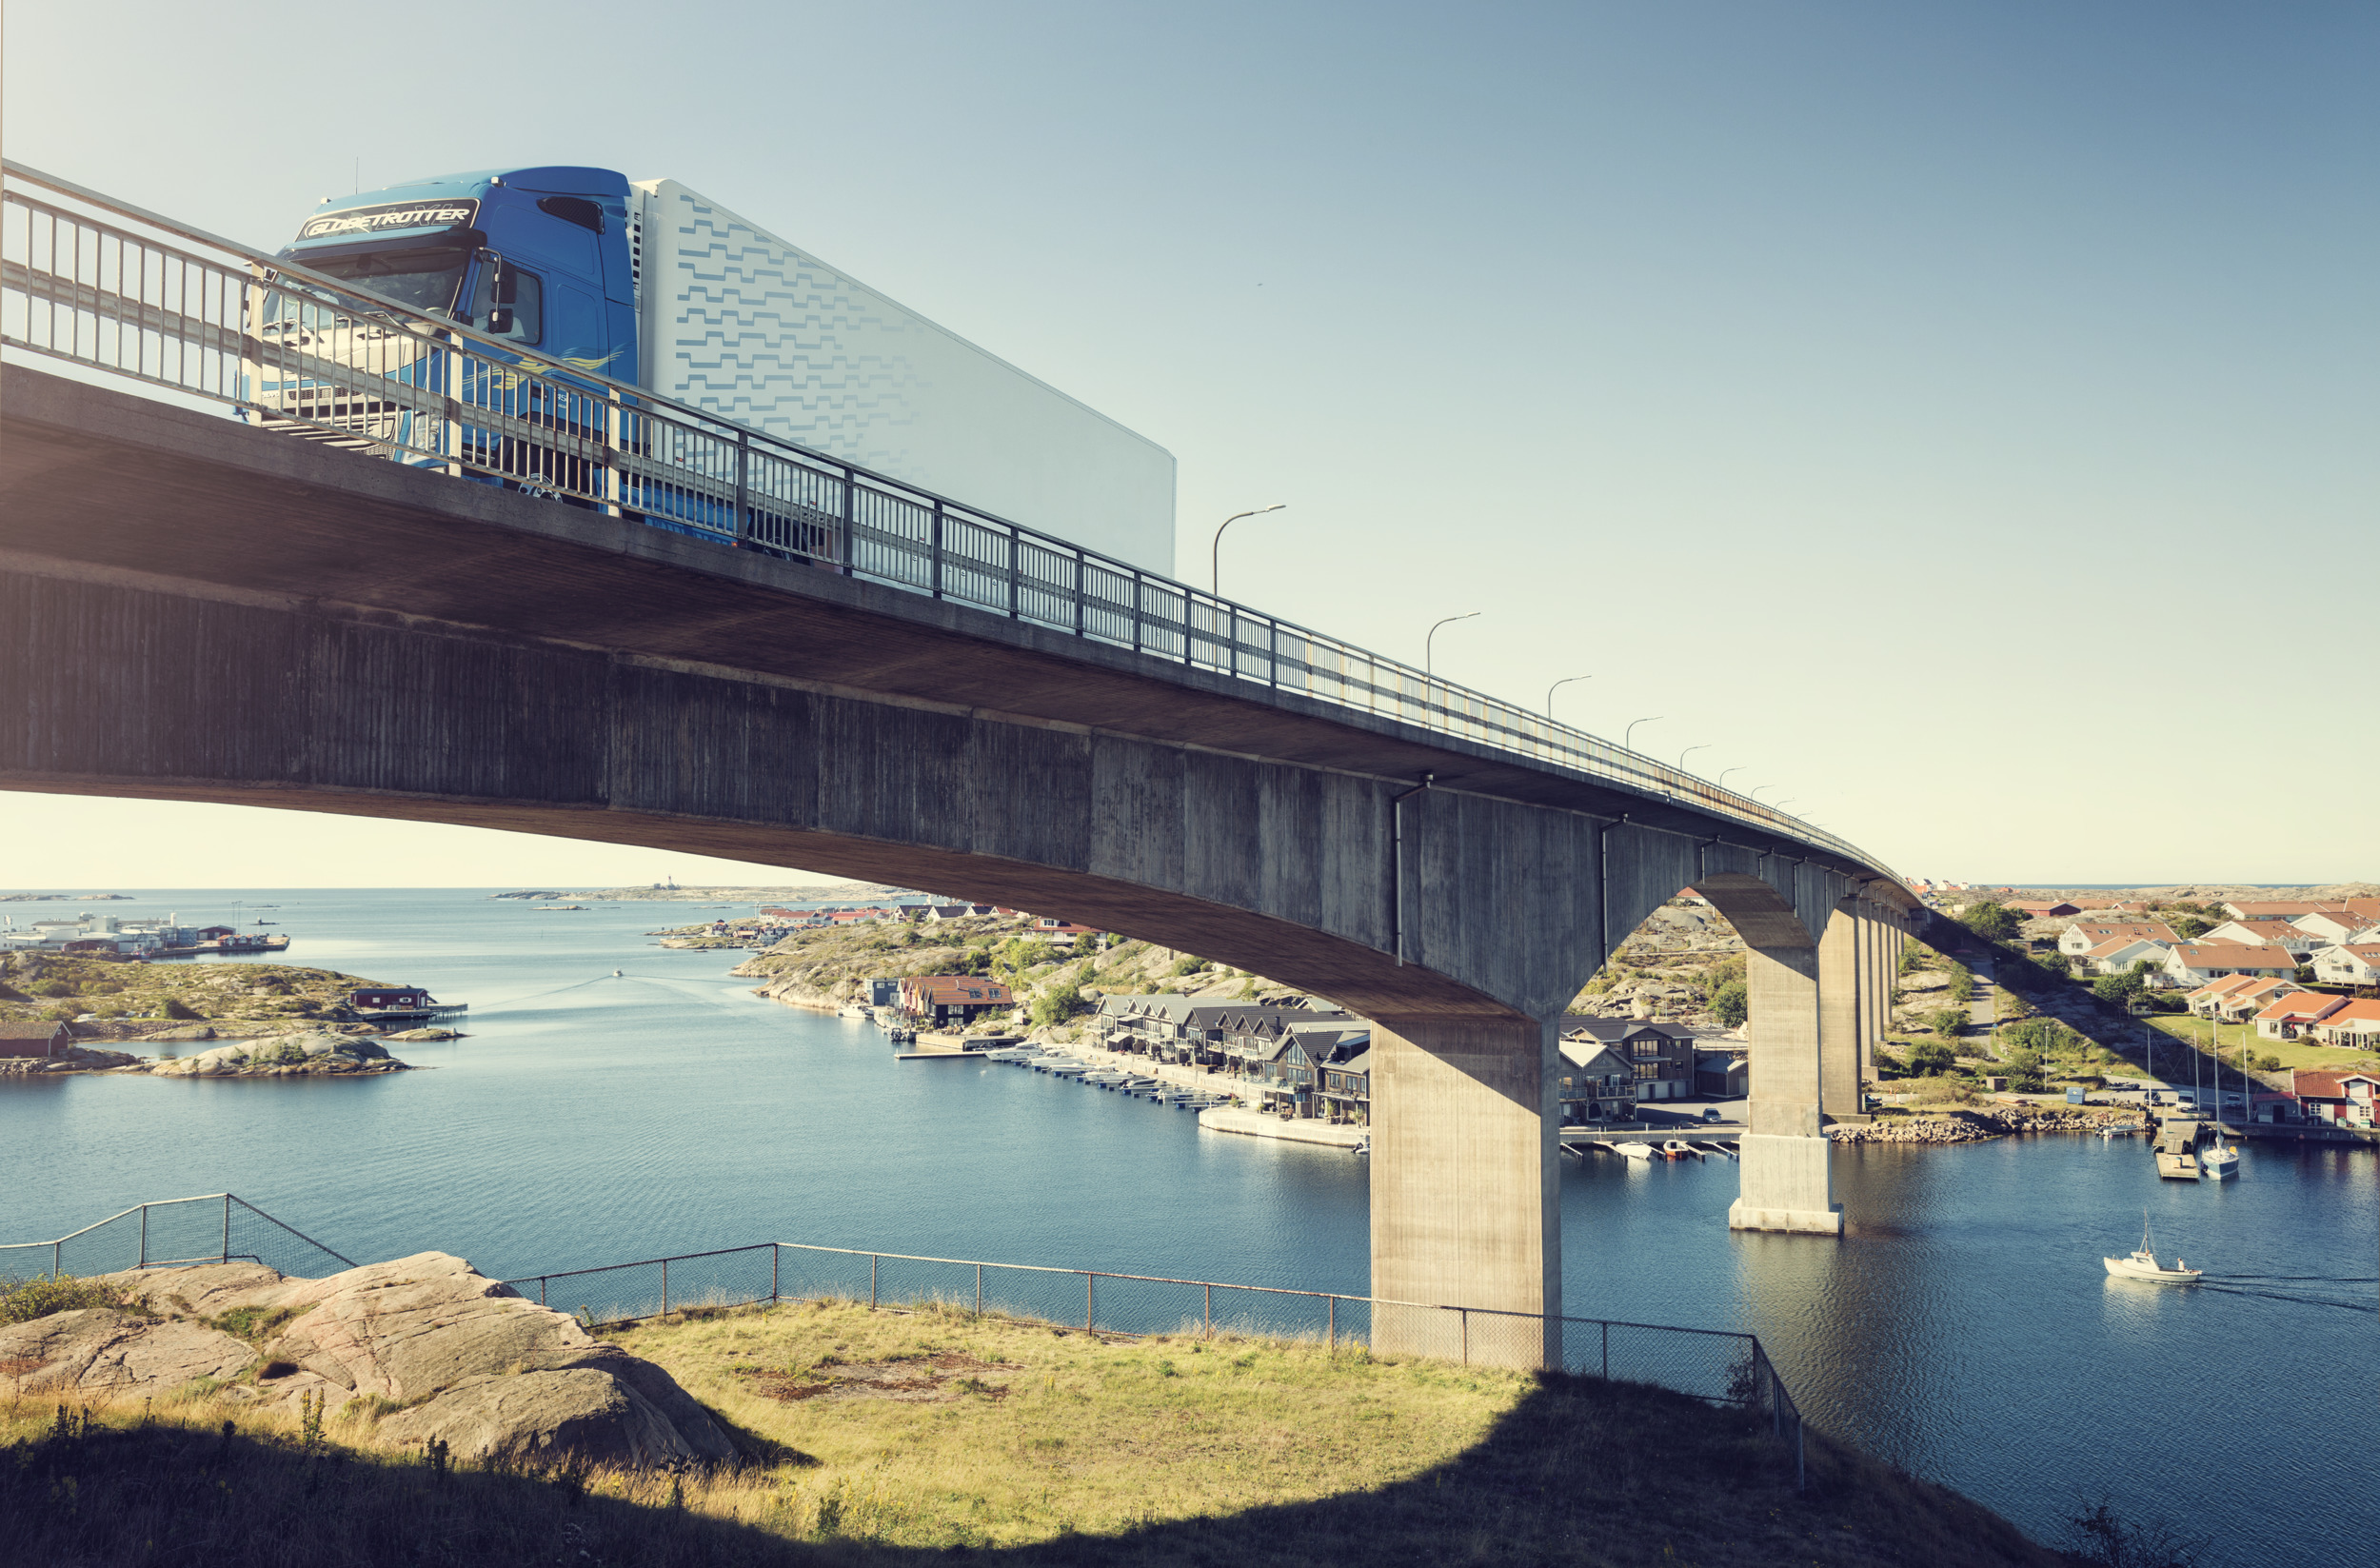 truck, blue truck, bridge, water, city, transportation, travel, Volvo, peaceful